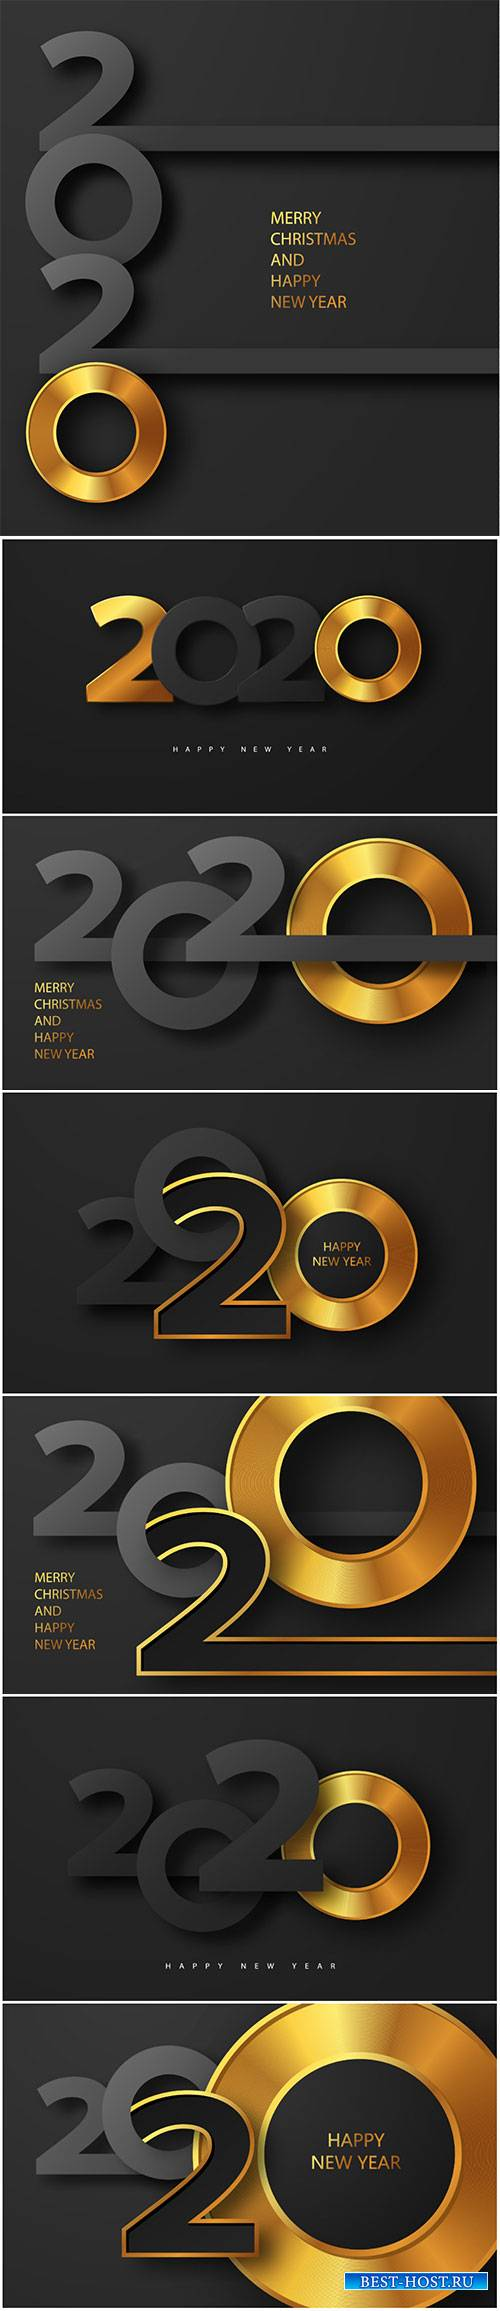 Merry Christmas and Happy new year 2020 banner with golden luxury text